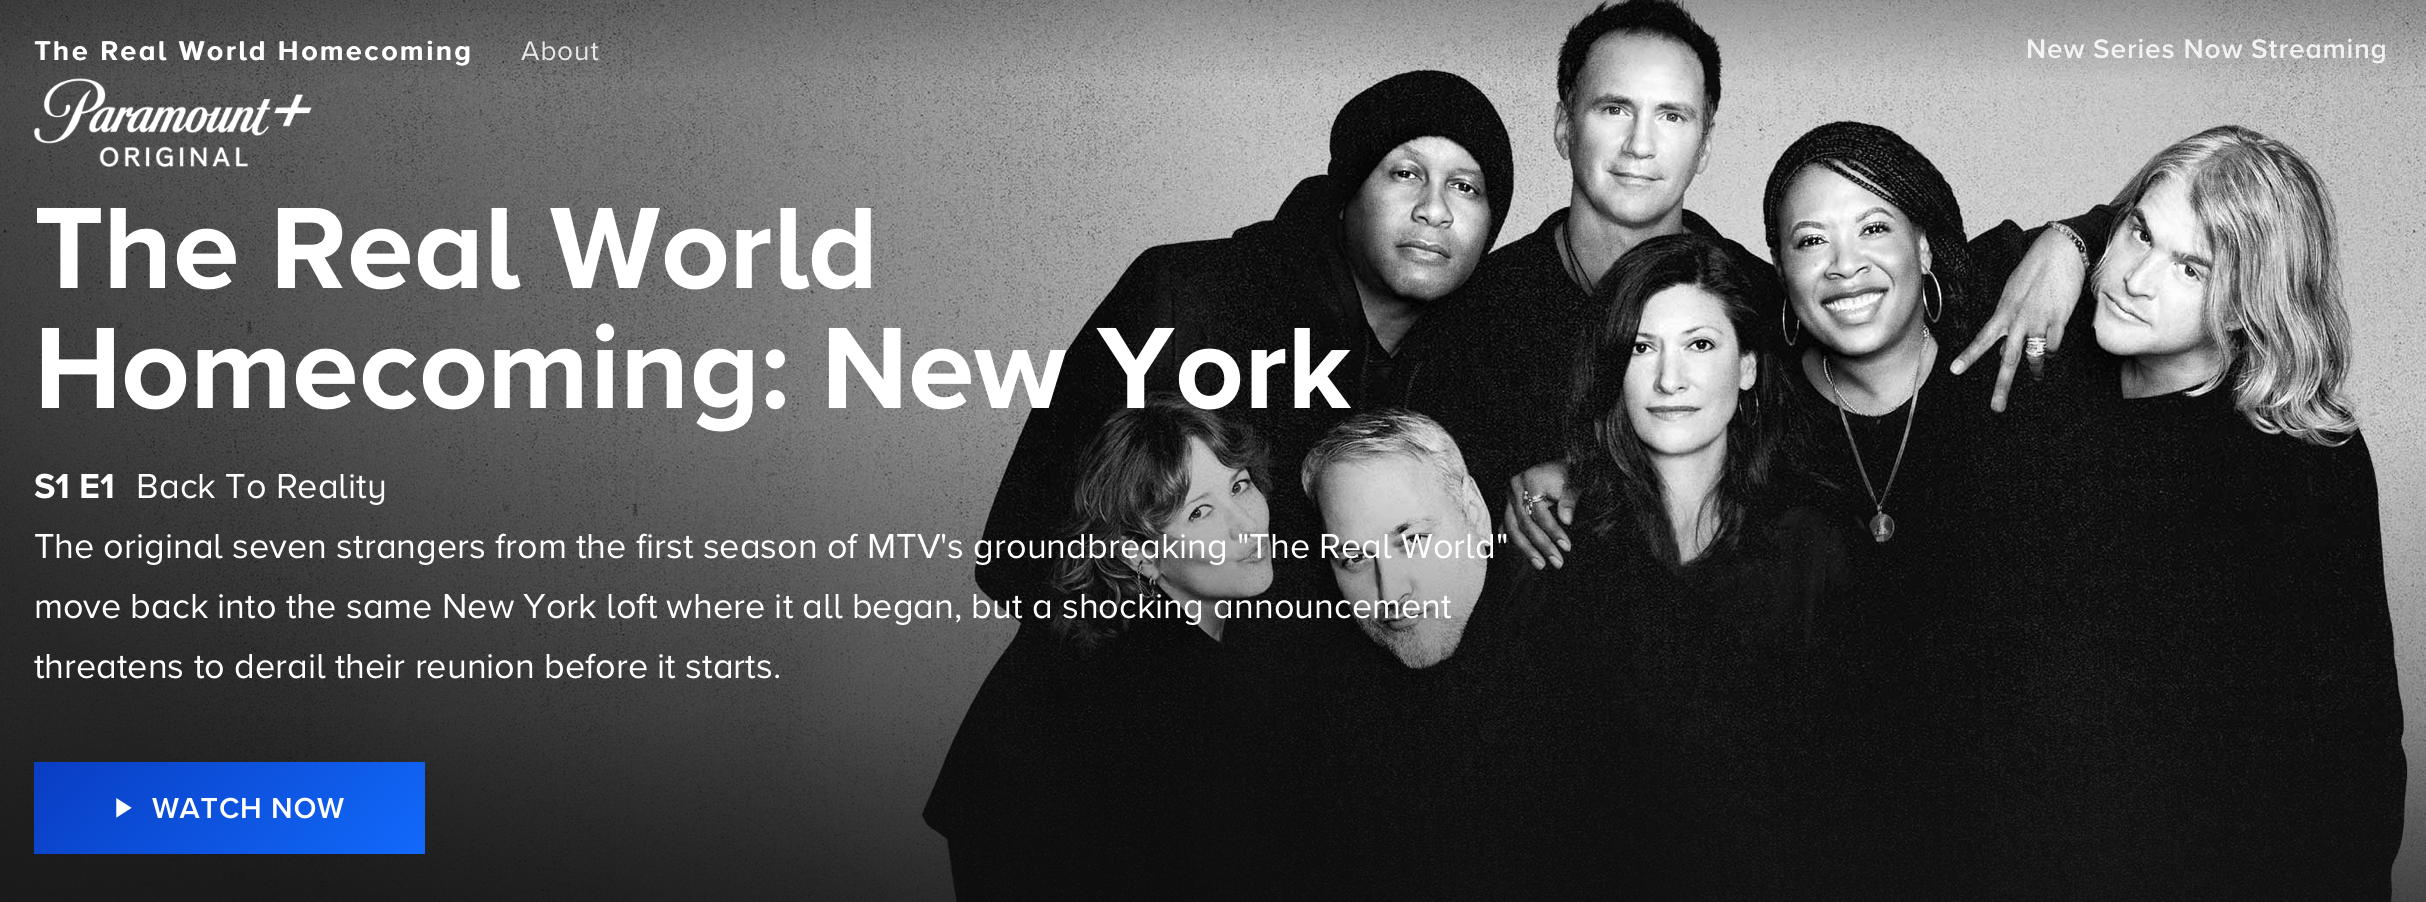 The Real World Homecoming New York Page on Paramount Plus